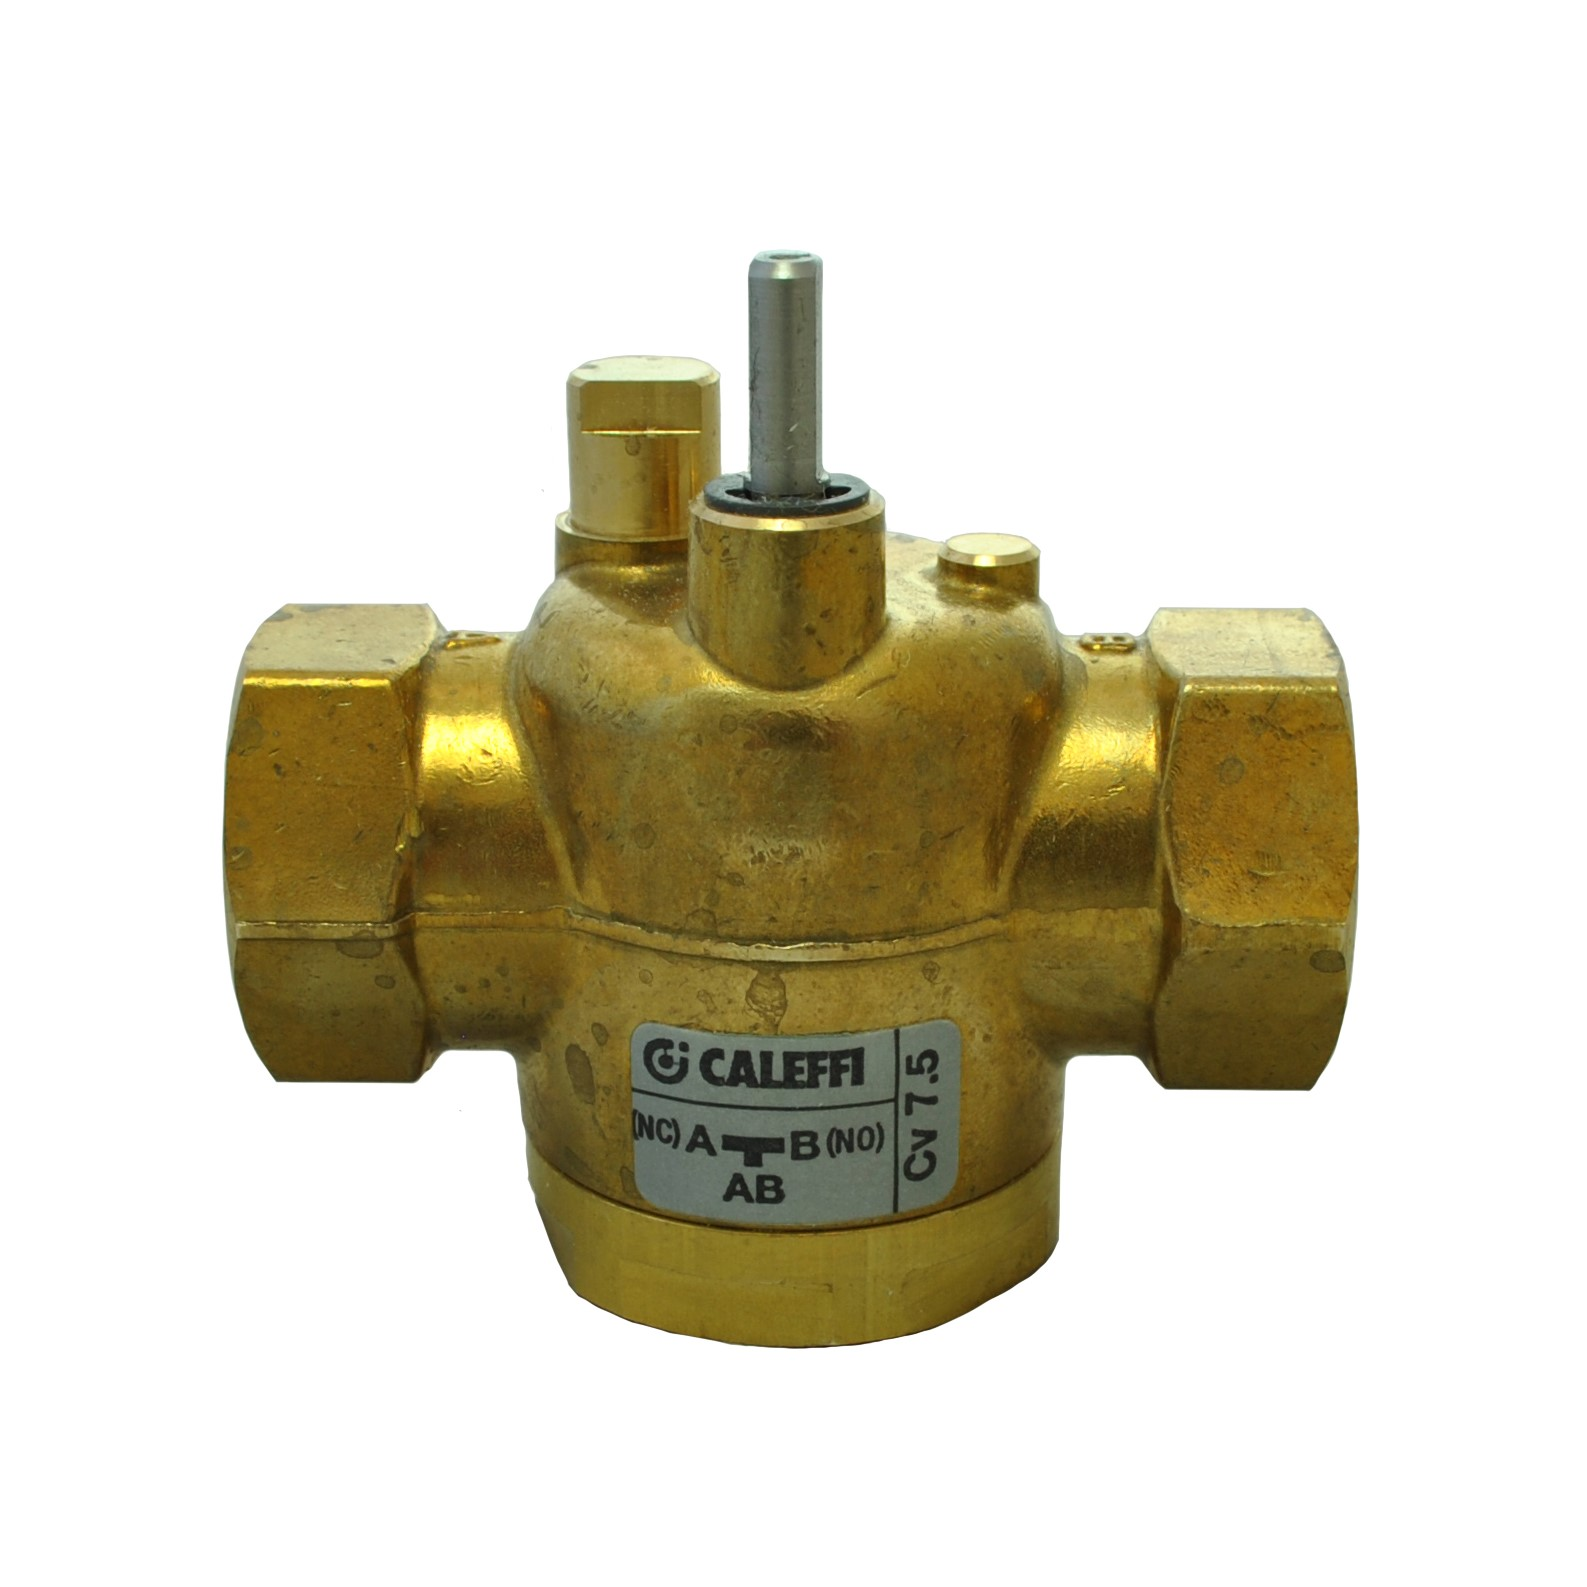 "Caleffi Z-one - 3/4"" NPT 3-way Straight Valve Body for Motorized Zone Valves"